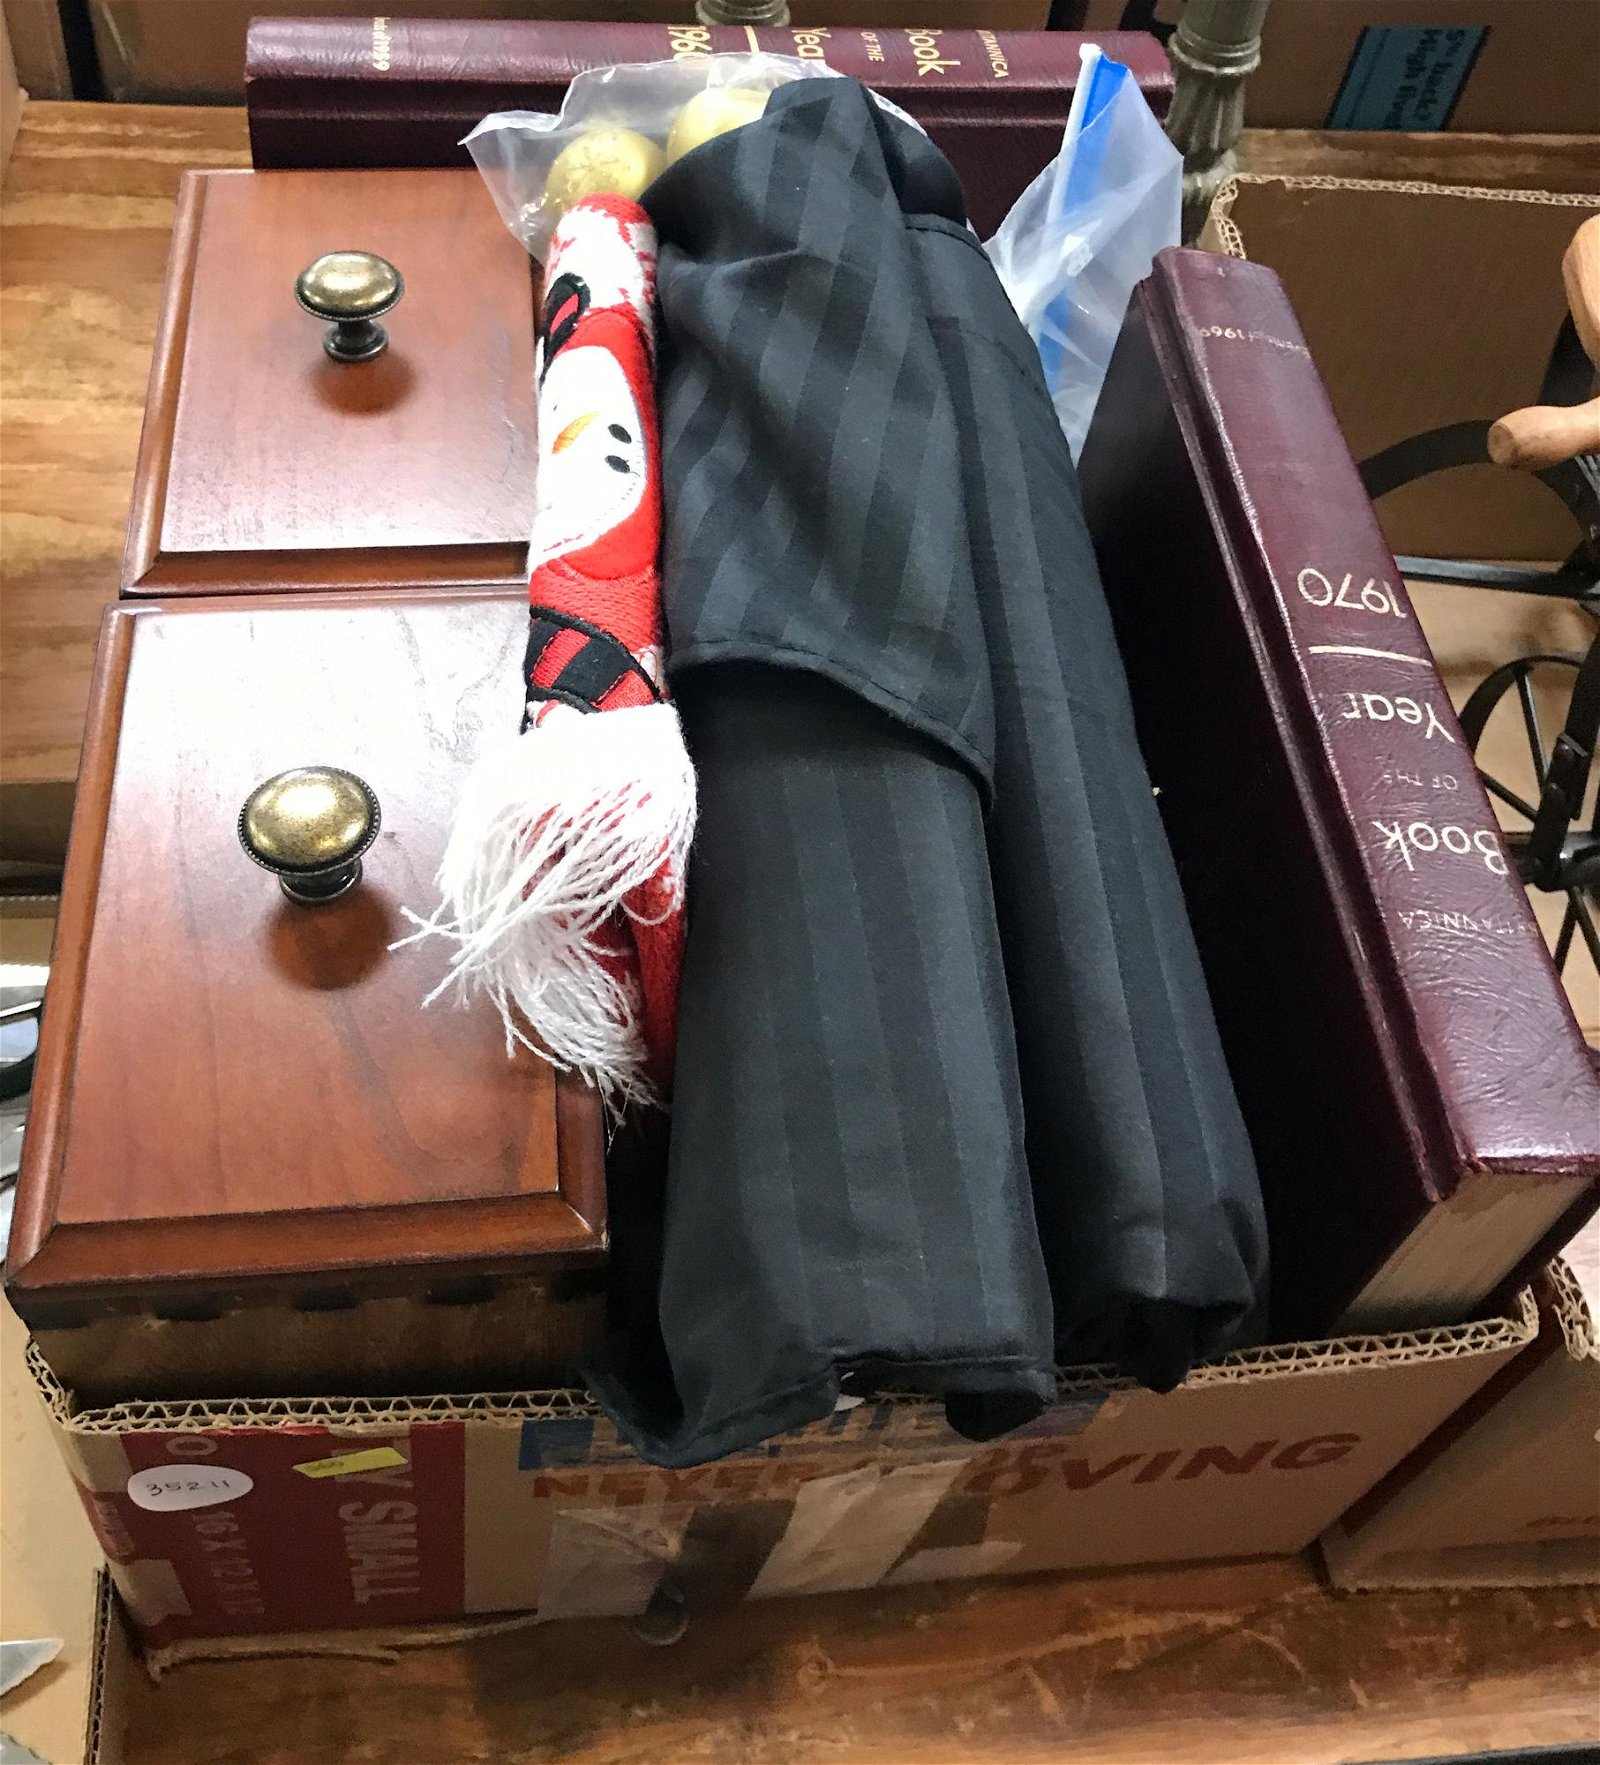 2 BOX LOTS WITH BOOKS, ORNAMENTS, DRAWERS, 2 LAMPS,